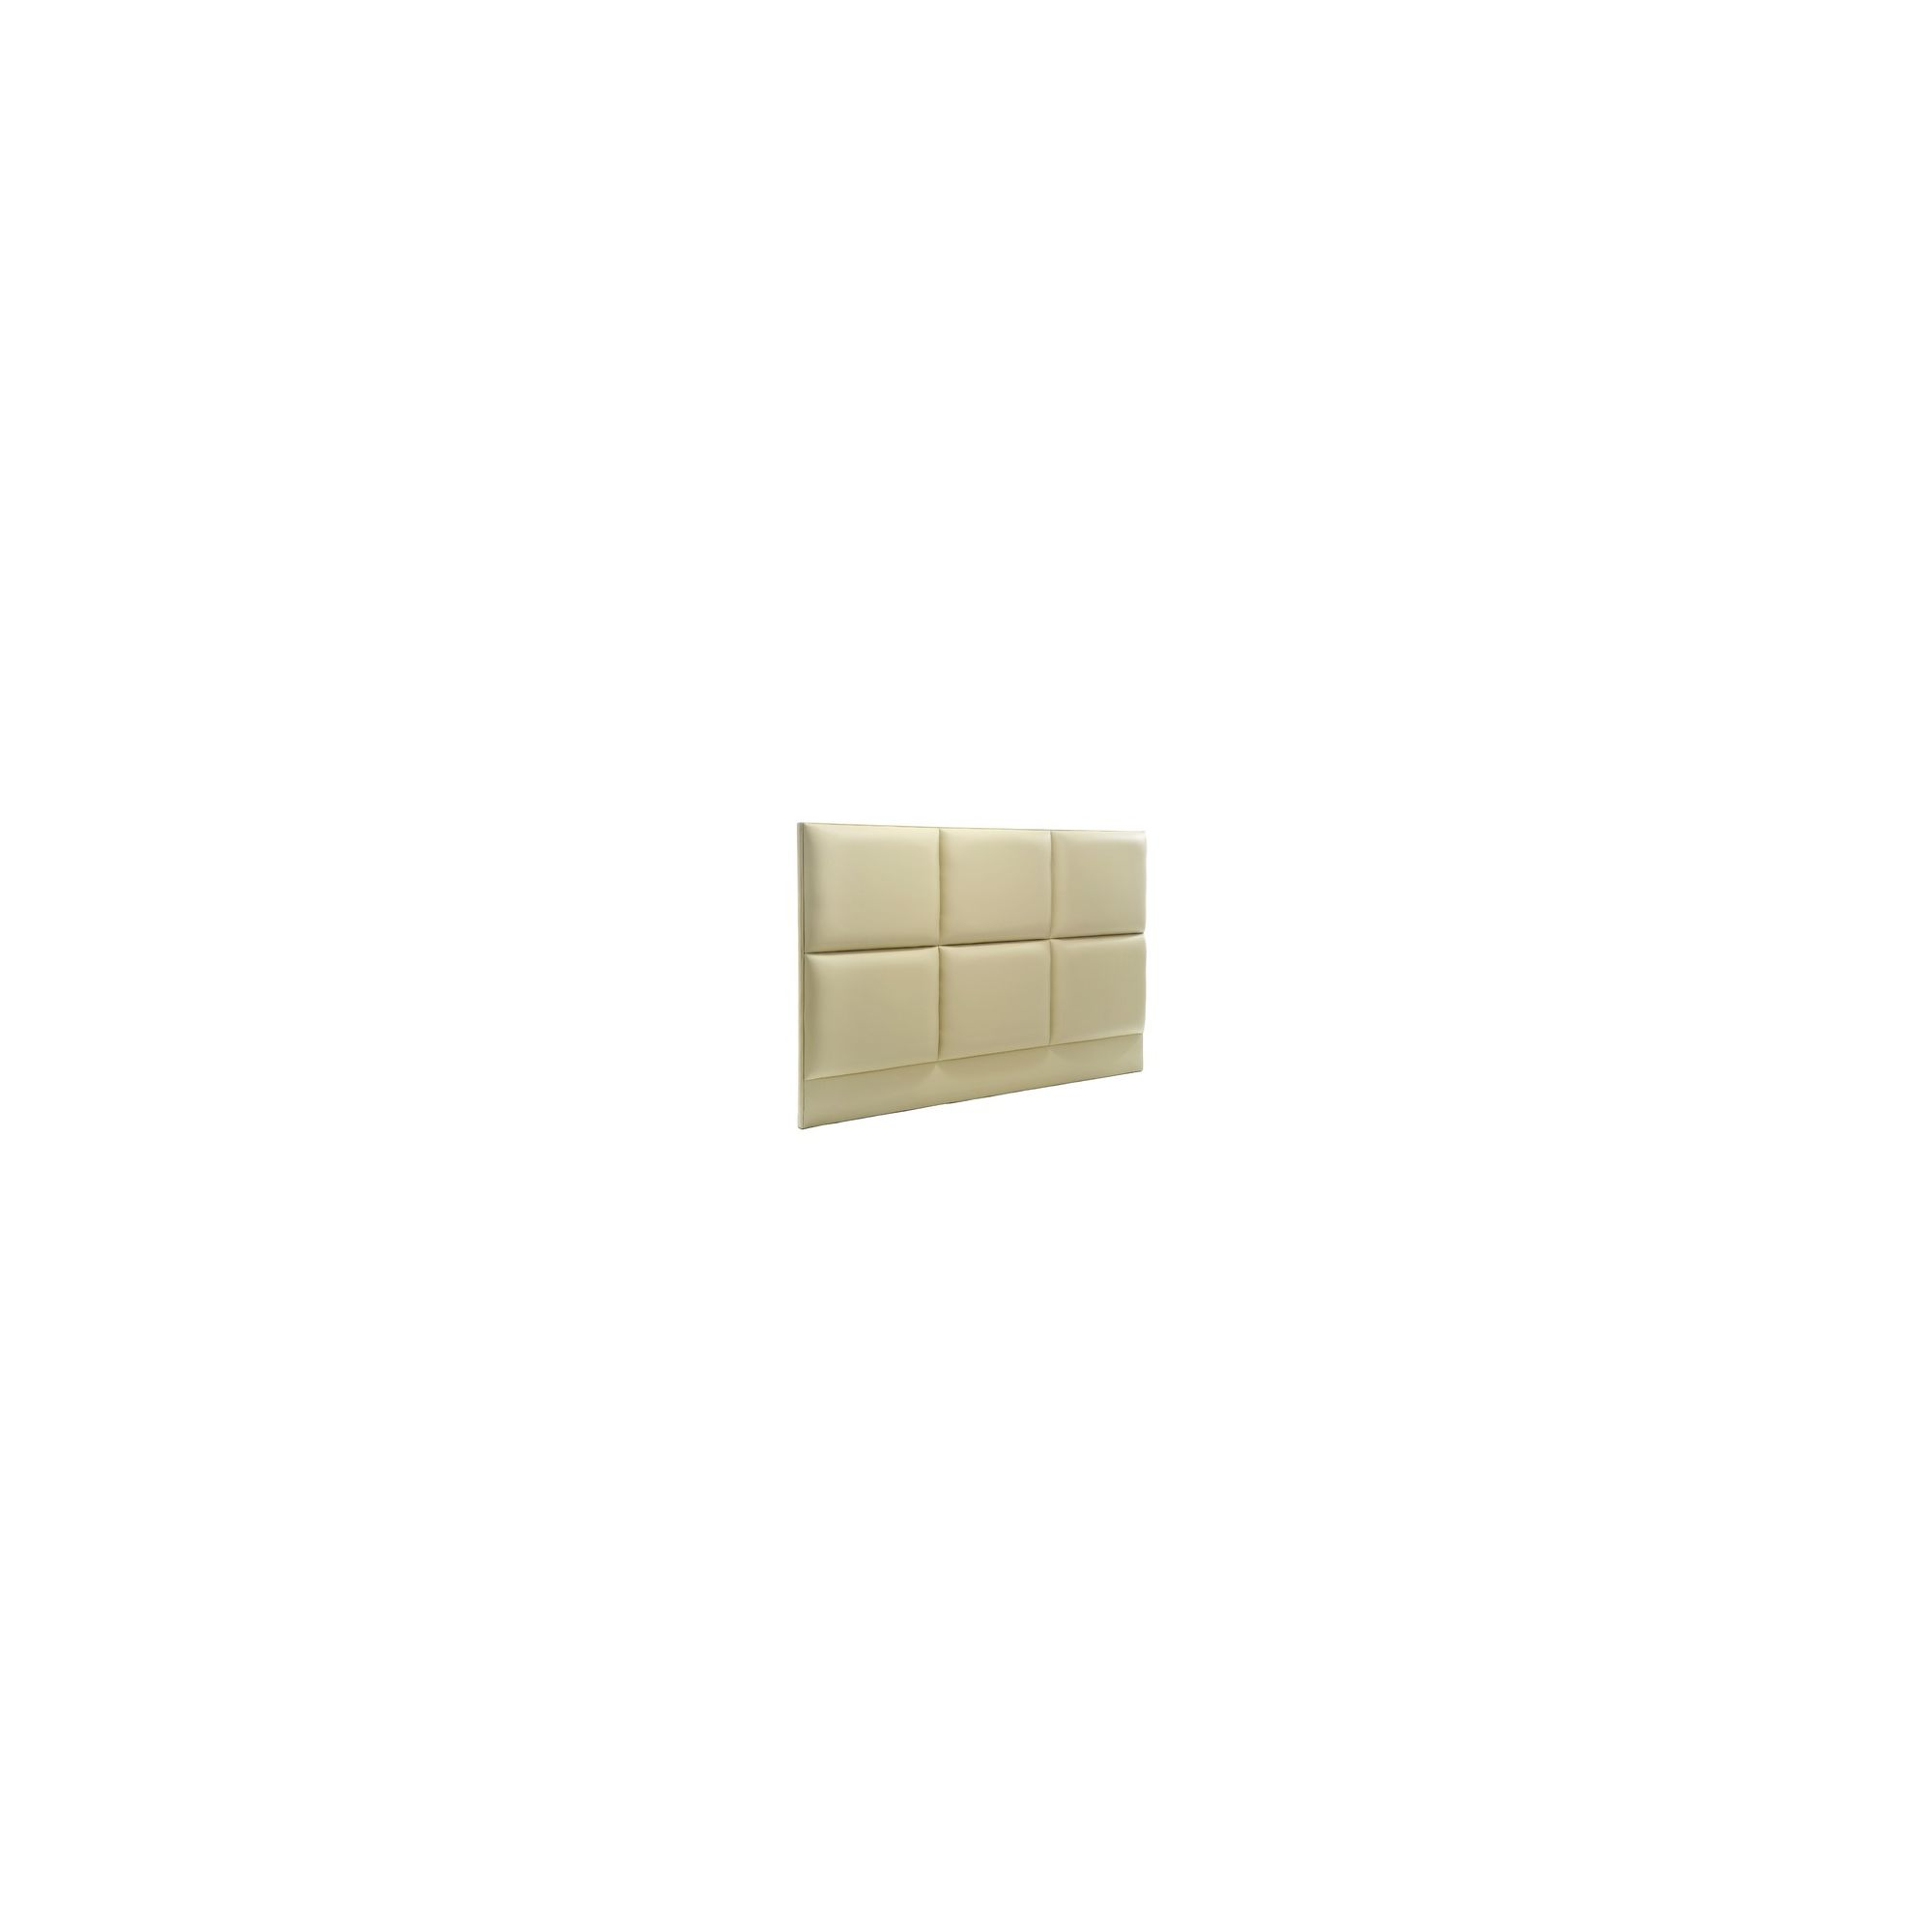 PC Upholstery Columbo Headboard - Espresso - 3' Single at Tesco Direct